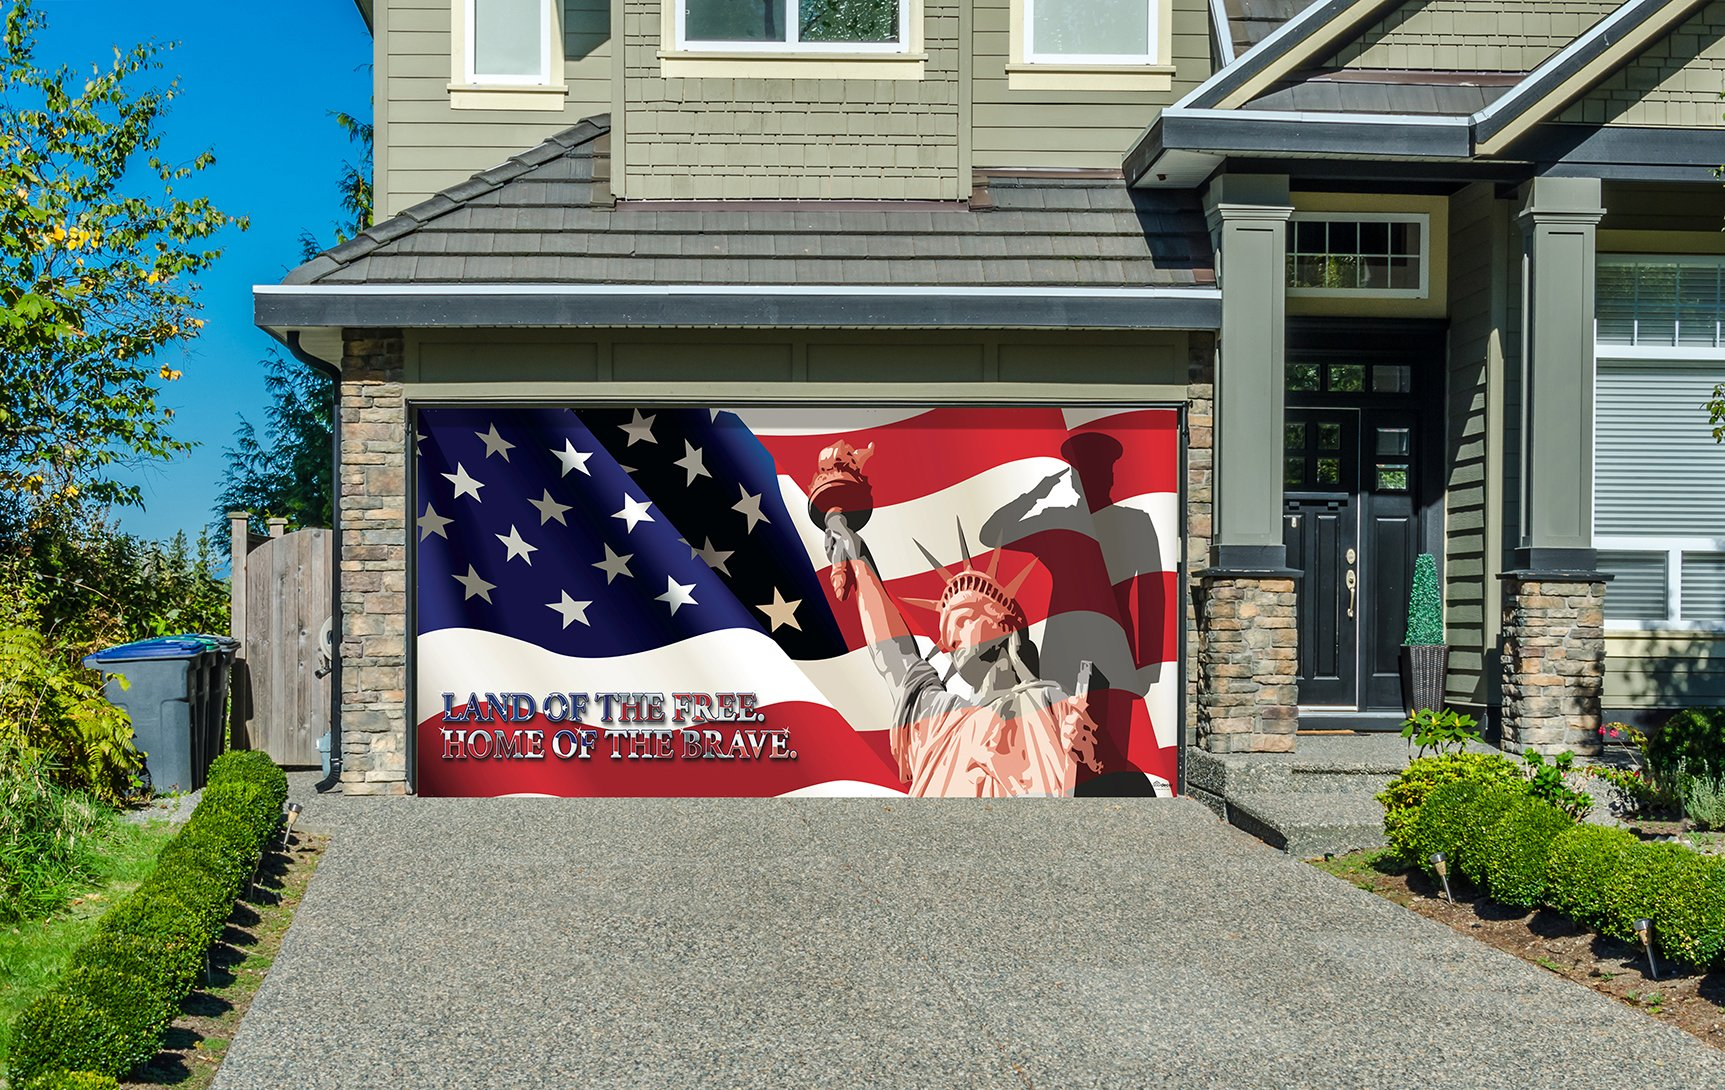 Outdoor Patriotic American Holiday Garage Door Banner Cover Mural Décoration 8'x16' - US Military Liberty - Outdoor Patriotic Garage Door Banner Décor Sign 8'x16'